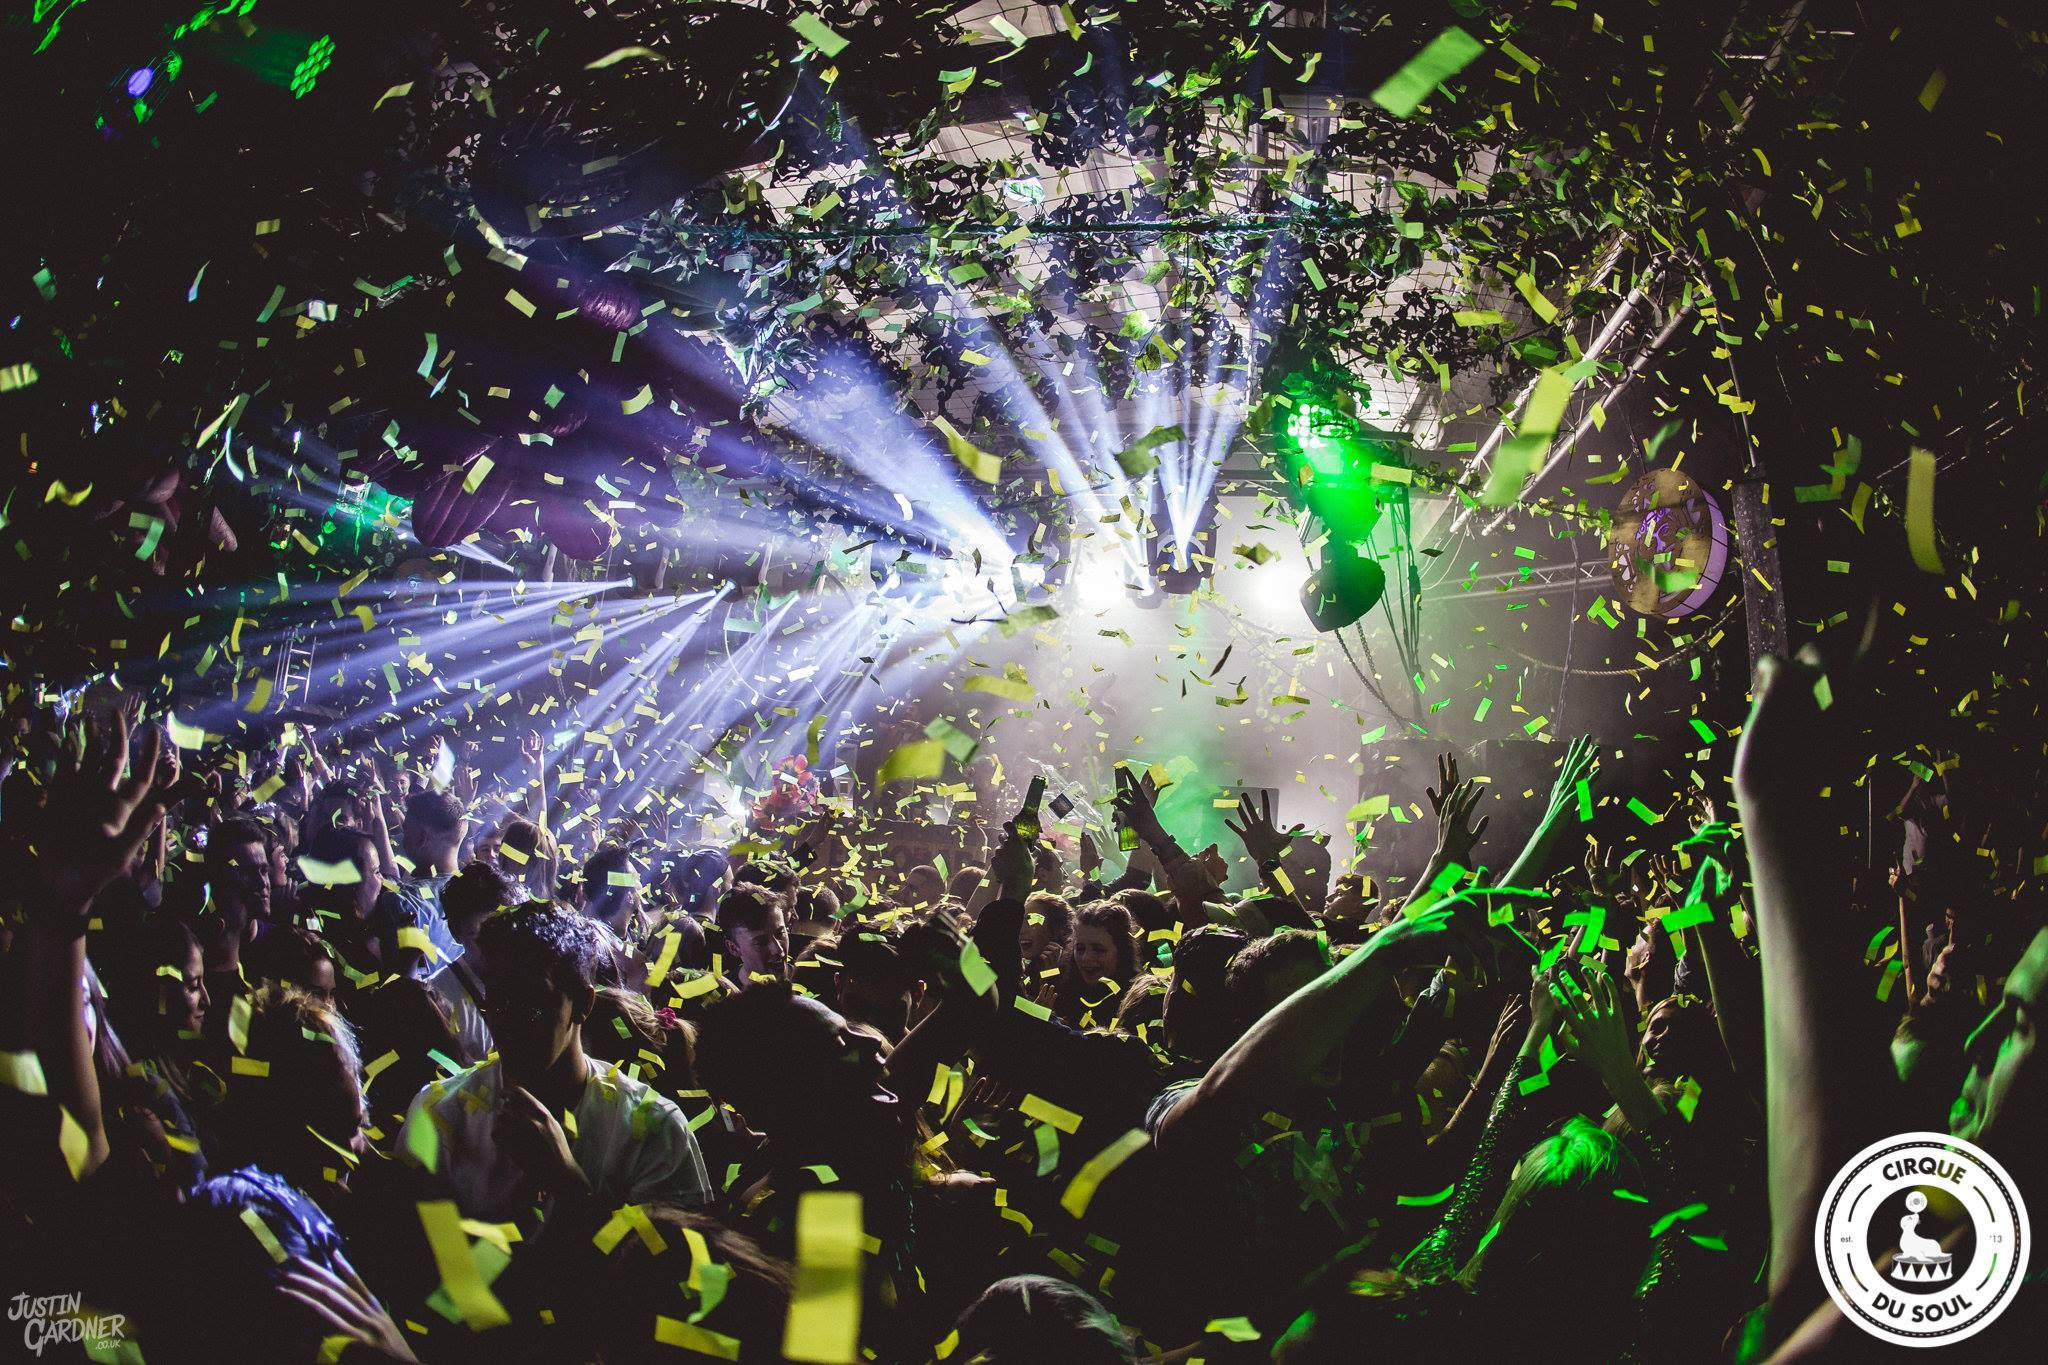 Digital Newcastle image of people on the dance floor with confetti falling on the crowd